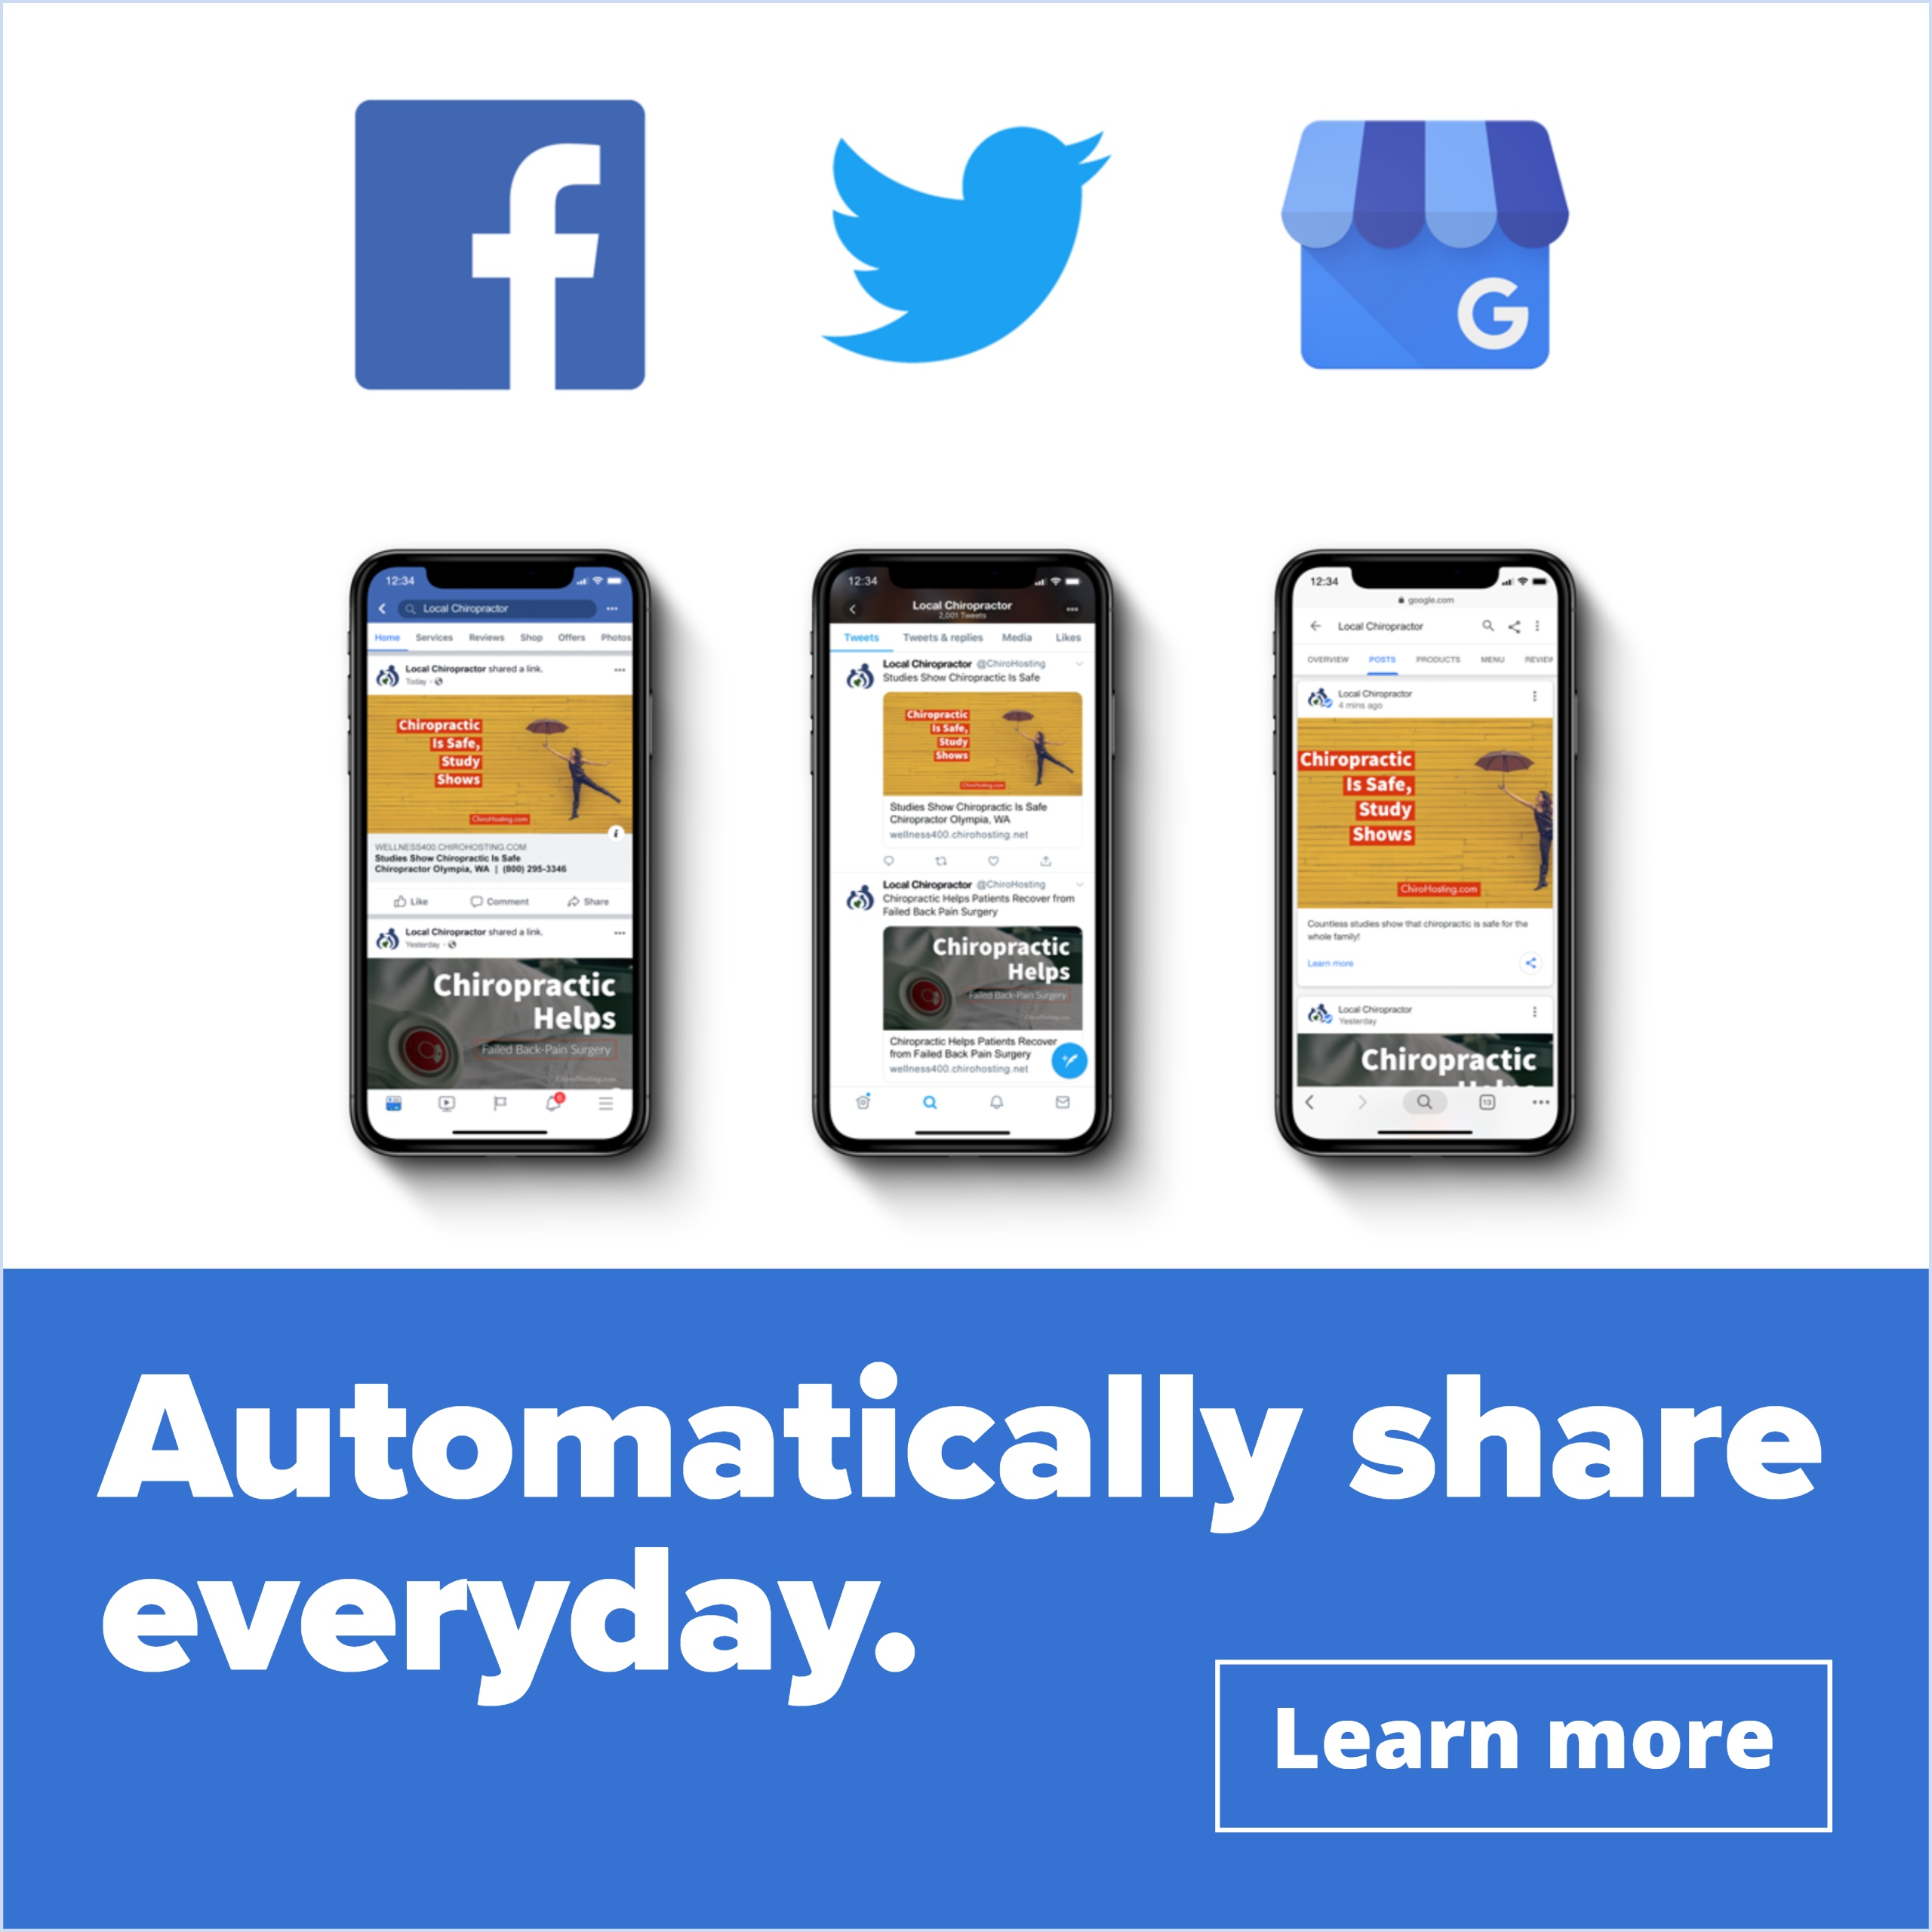 >> Click here to learn more << How can you automatically share on social media everyday?